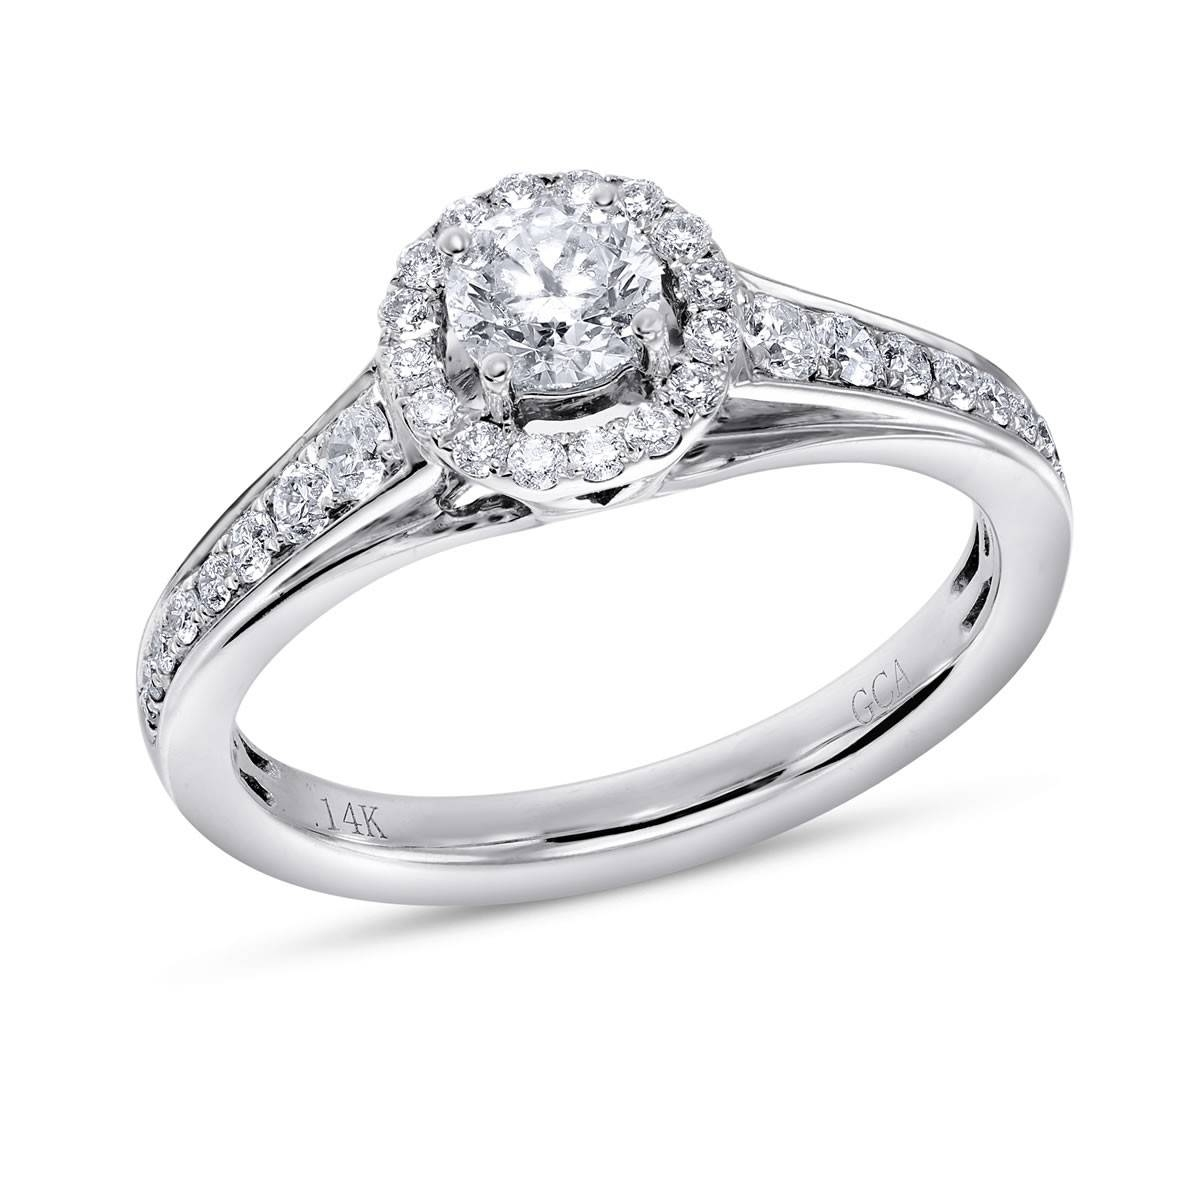 Calista, 14K White Gold I1 Round Diamond Engagement Ring, 3/4 Ctw With Regard To 14K White Gold Engagement Rings (Gallery 13 of 15)